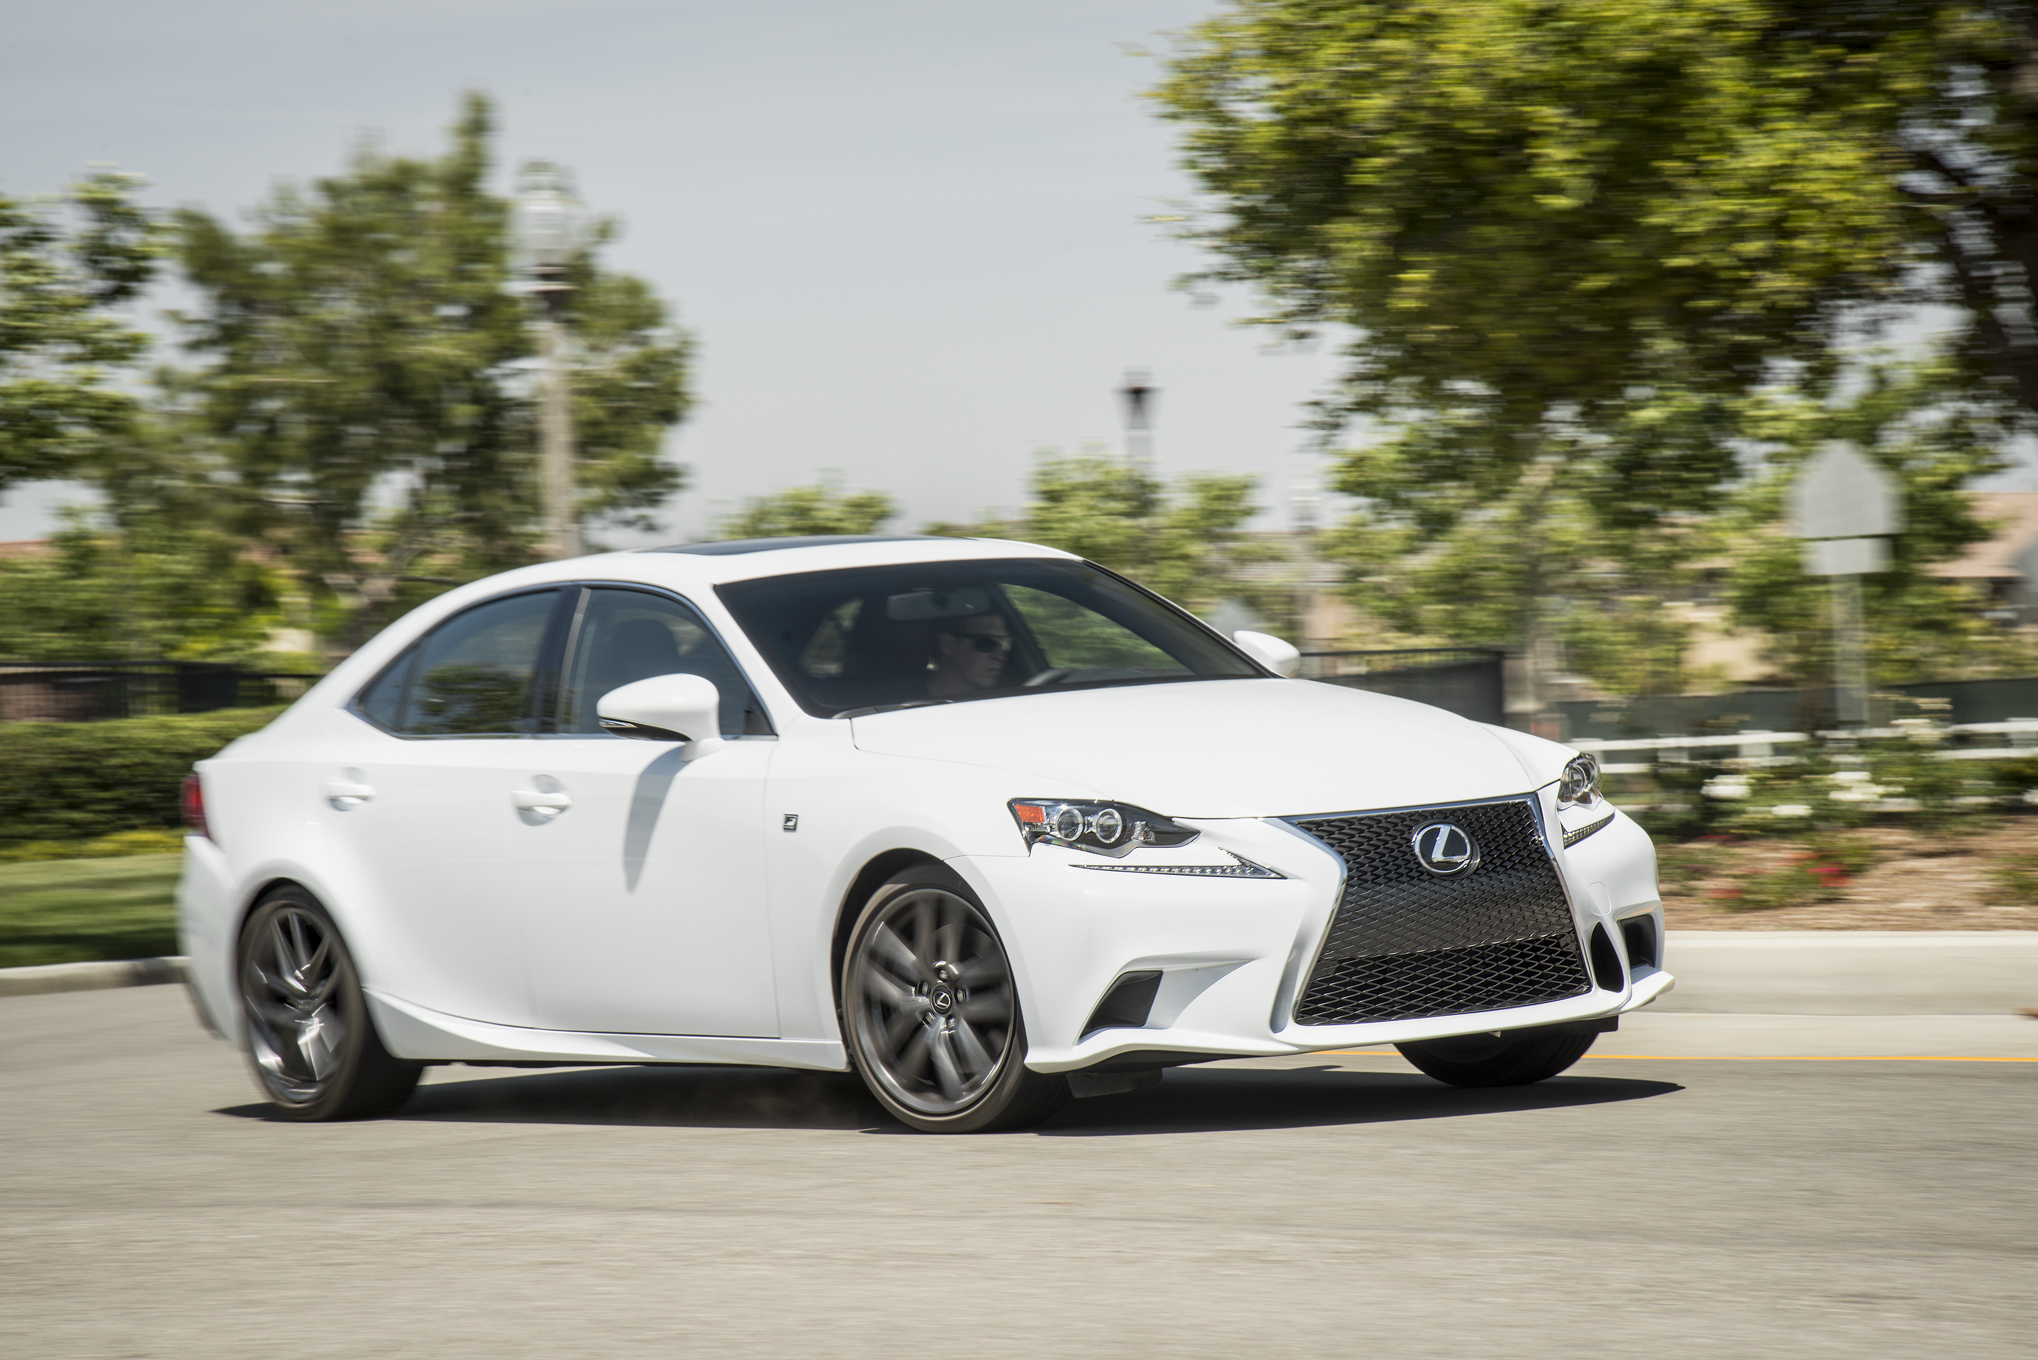 2014 Lexus IS Long Term Update 6: IS 350 F Sport